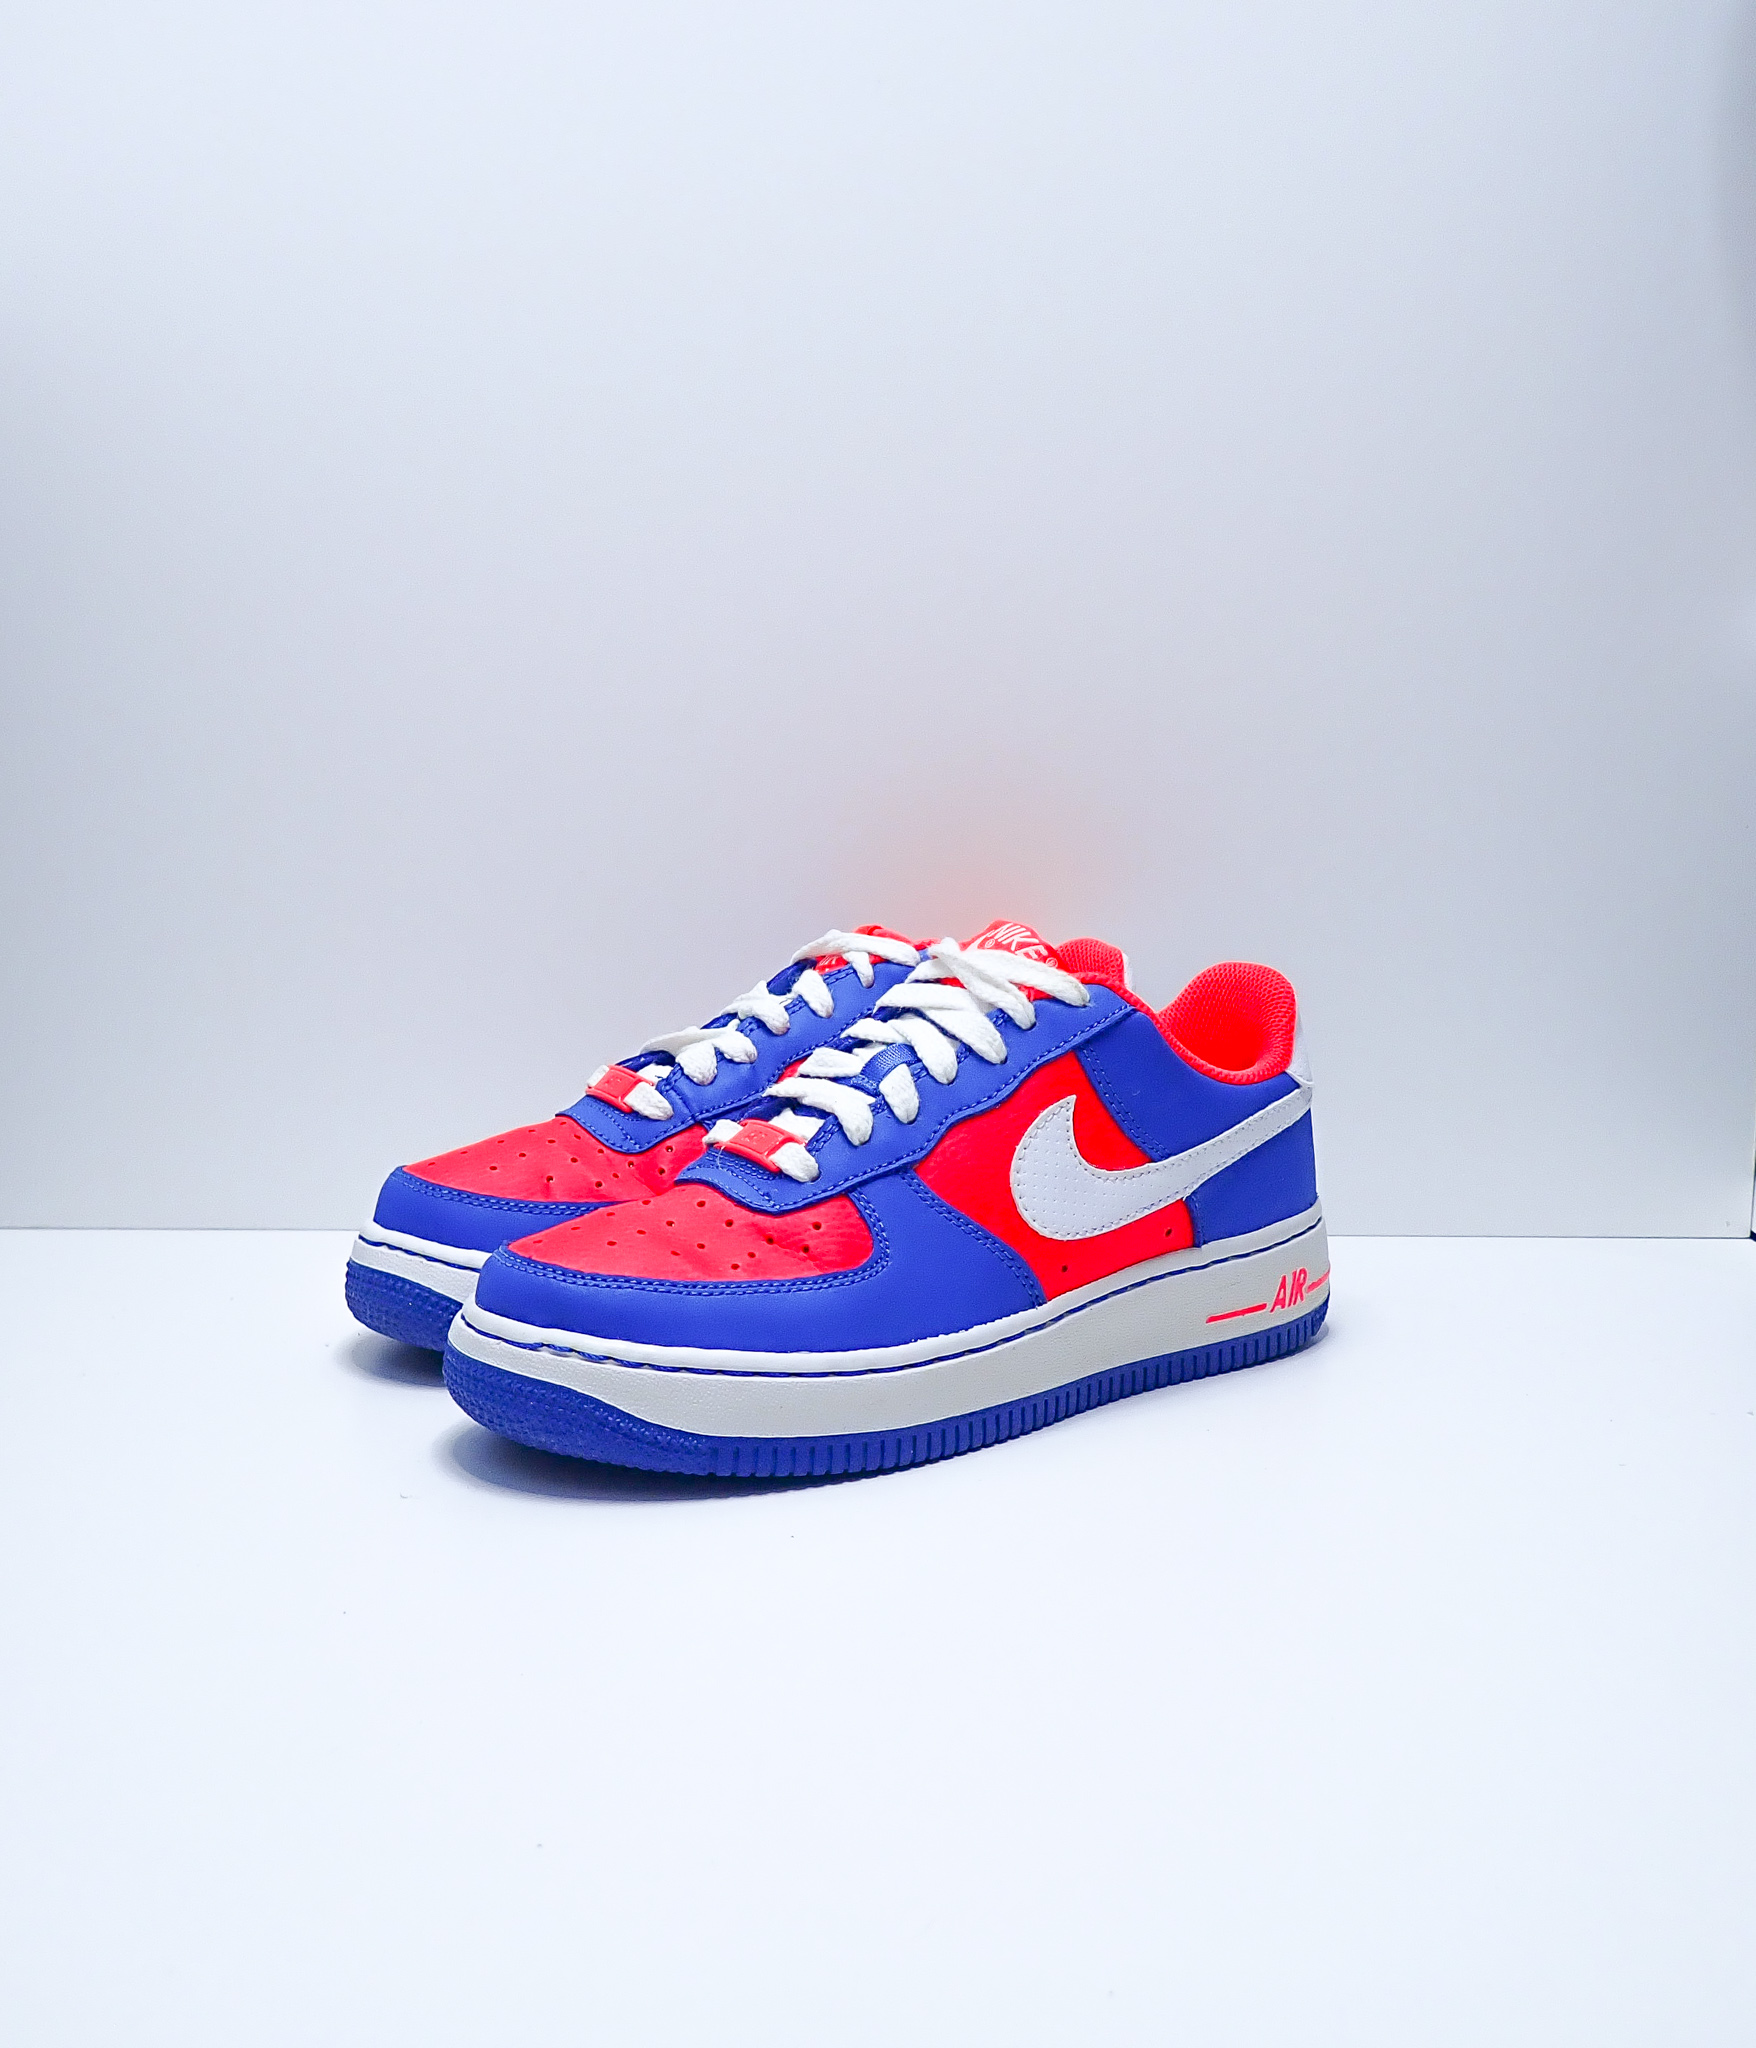 NikeAir Force 1 Low Laser Crimson